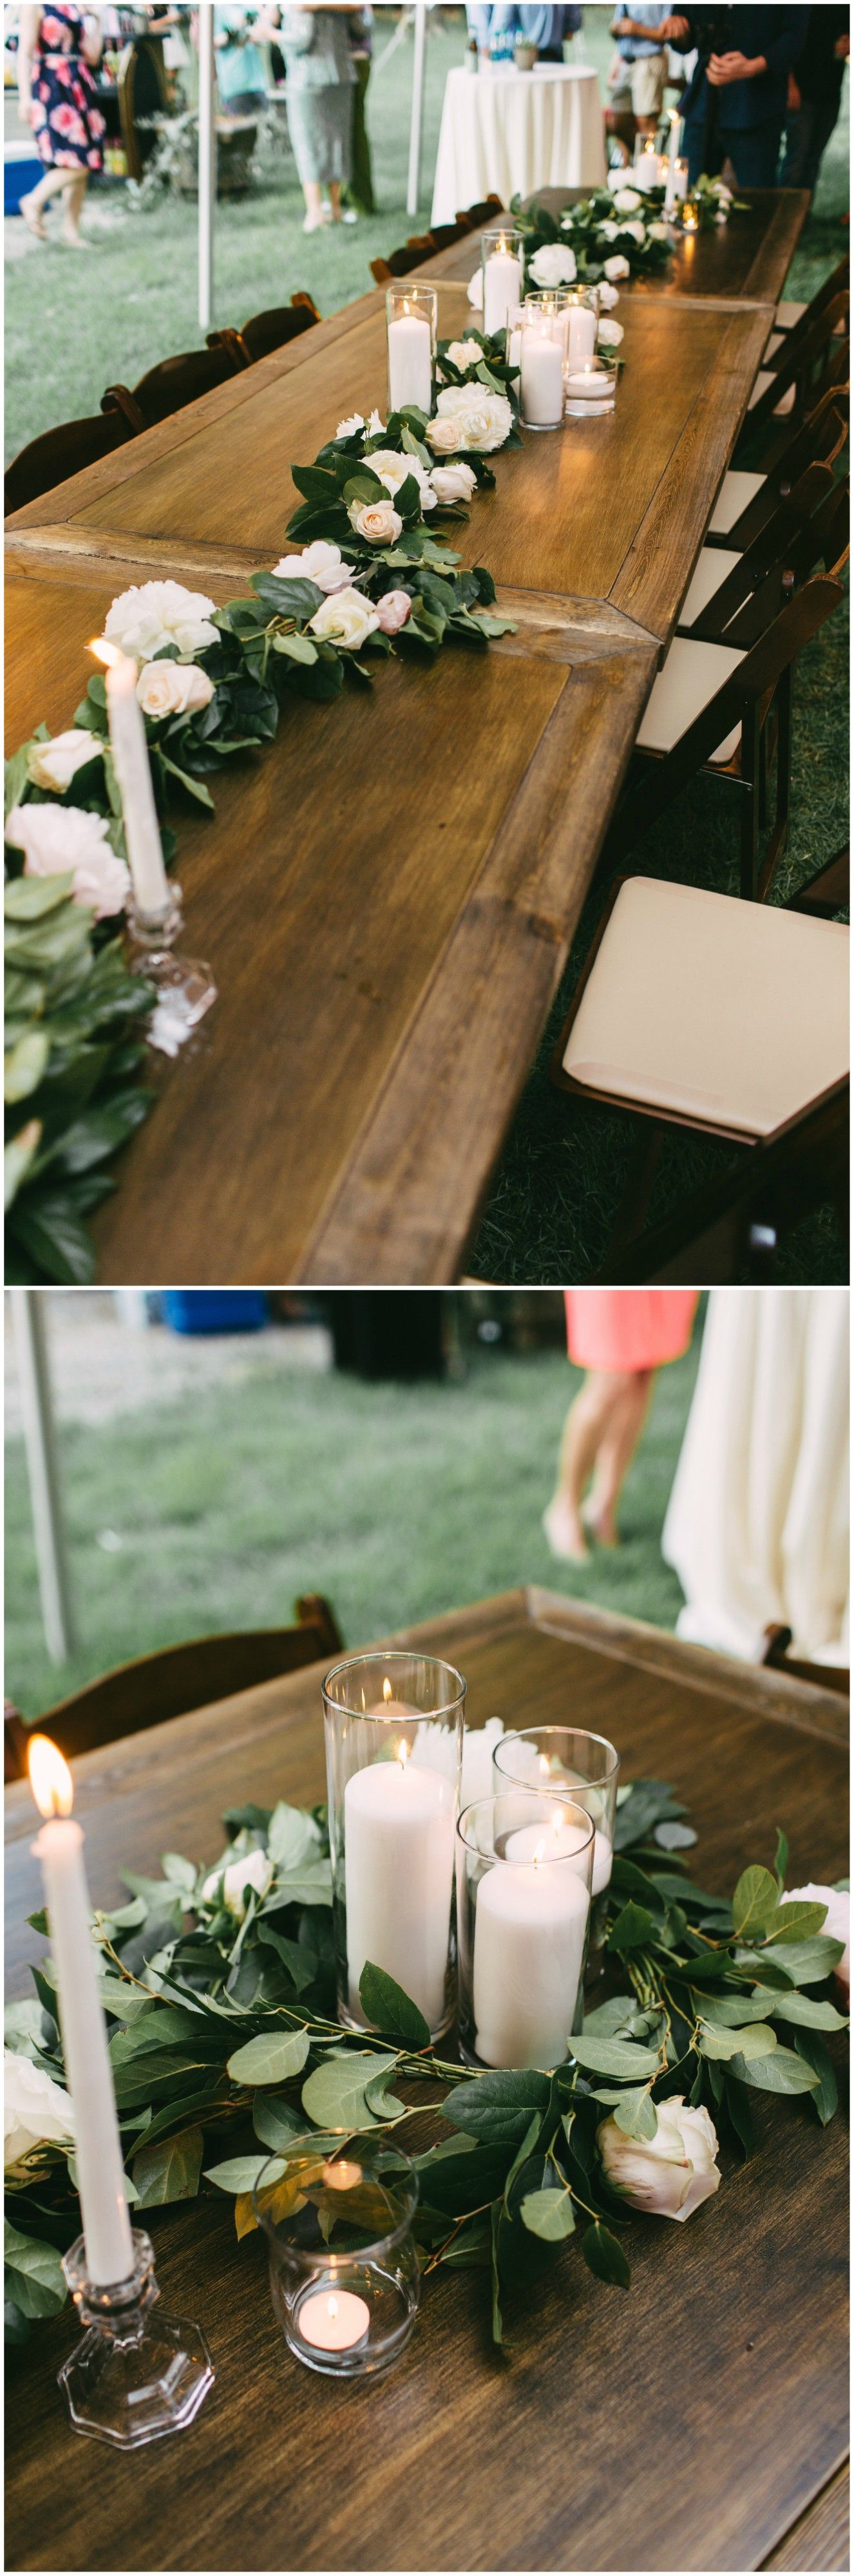 Wedding decorations natural  Natural Outdoor Nuptials in Tennessee  Memphis TN  Table garland